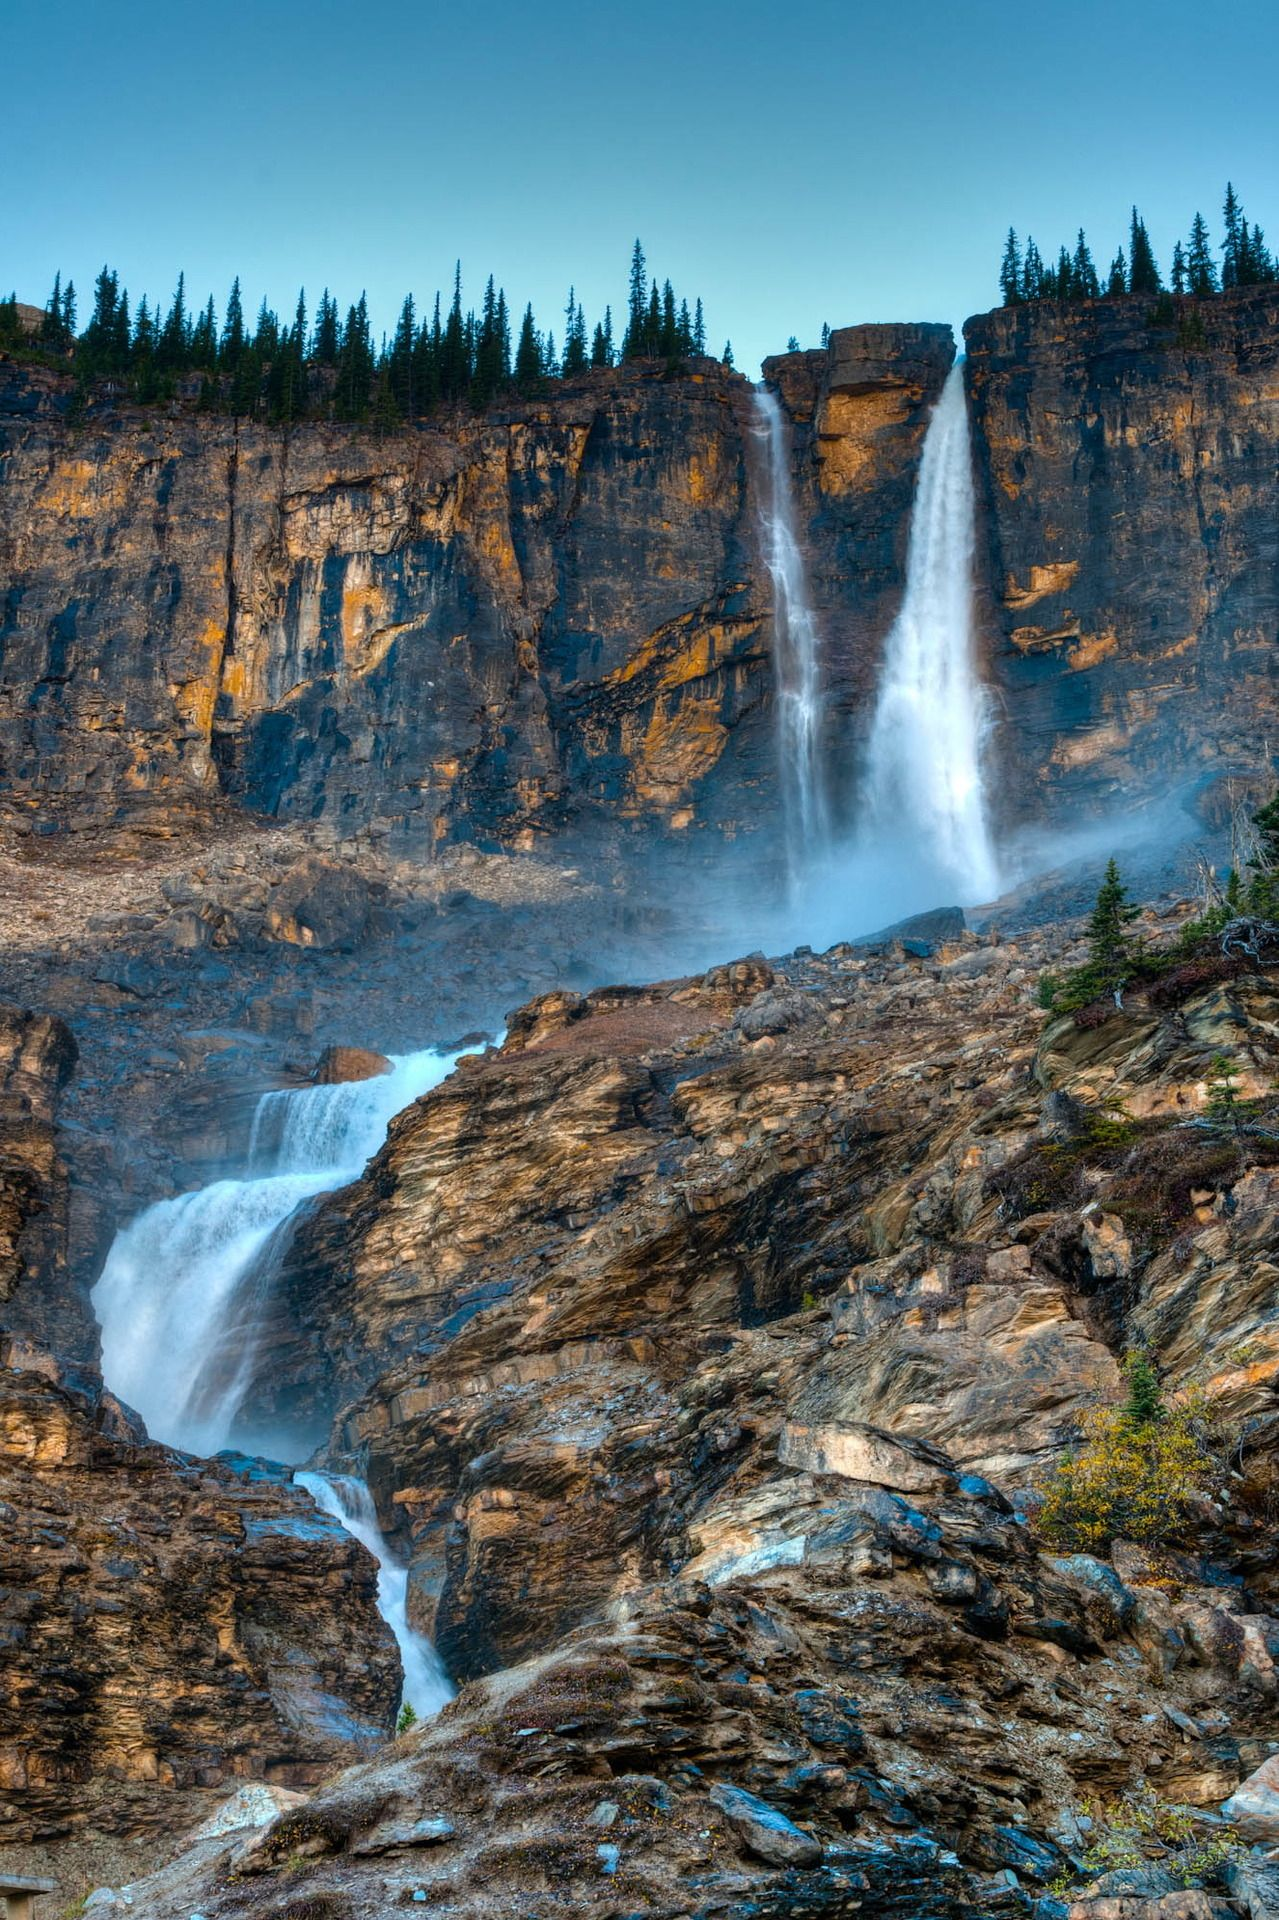 Twin Falls. Seen from the Iceline Trail in Yoho National